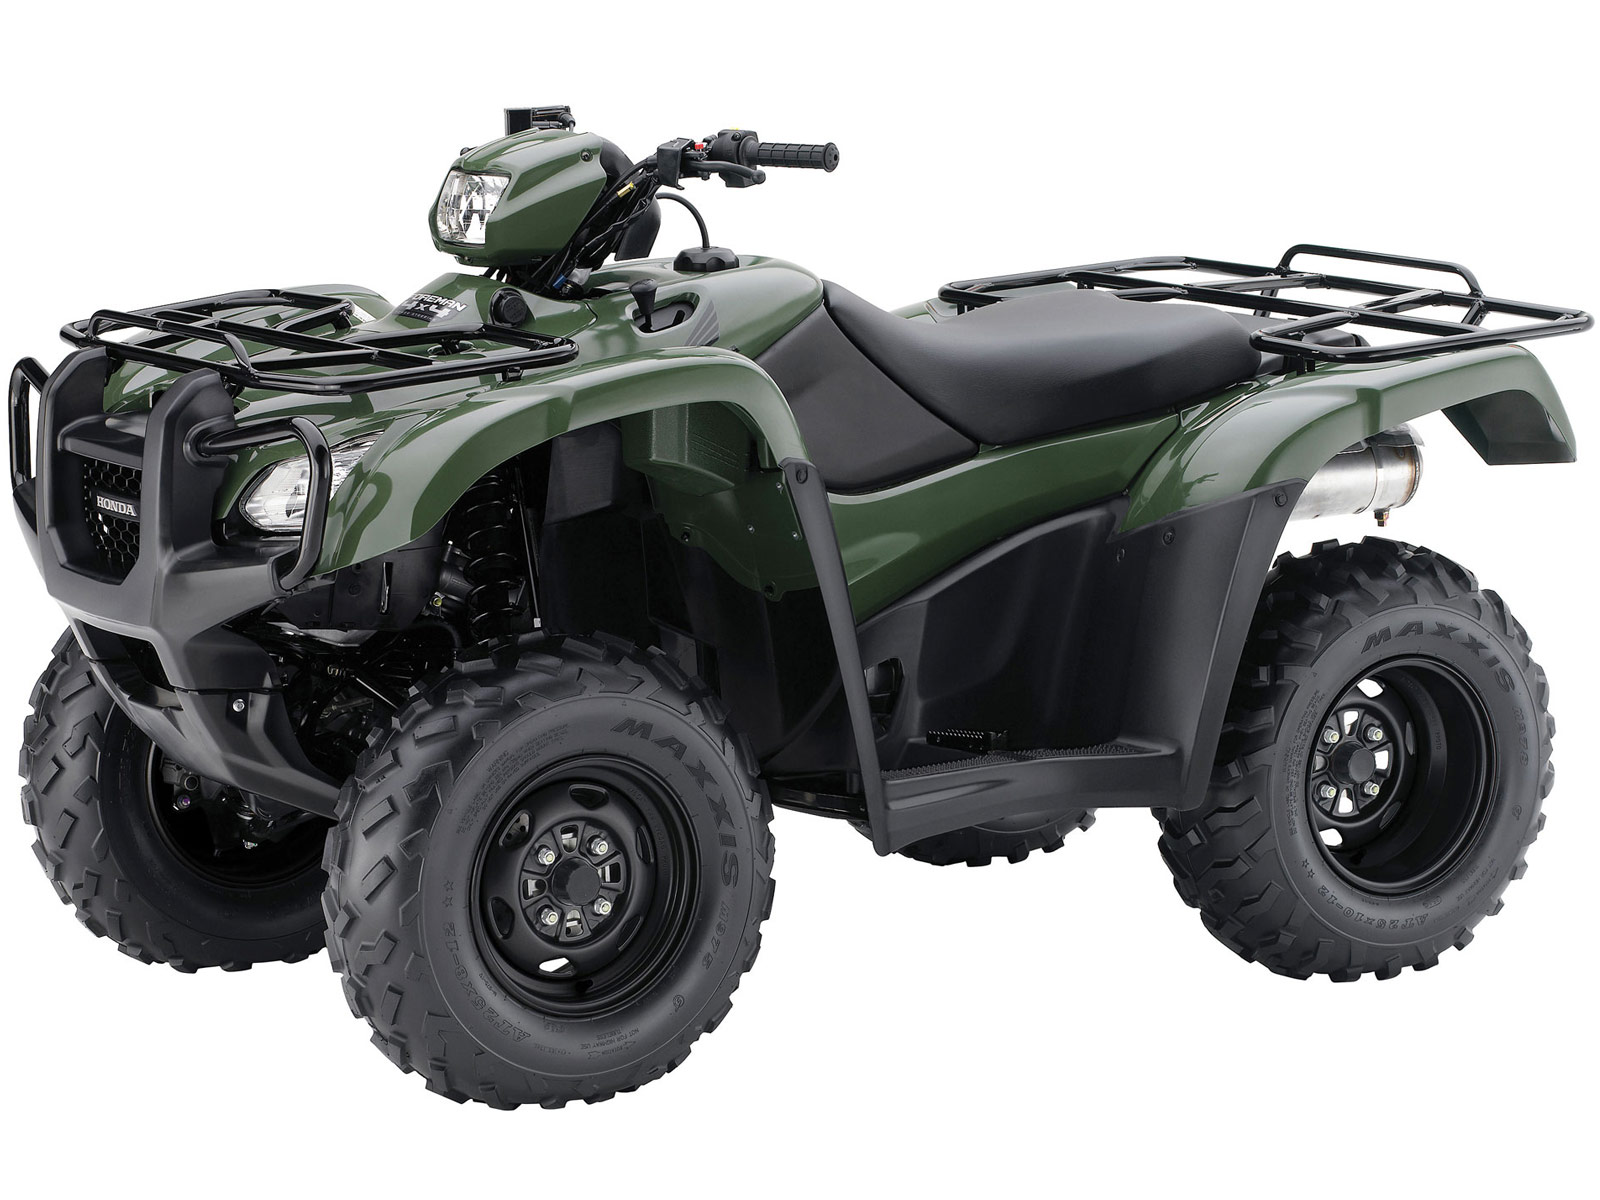 2013 honda fourtrax foreman 4x4 with electric power steering trx500fpm. Black Bedroom Furniture Sets. Home Design Ideas